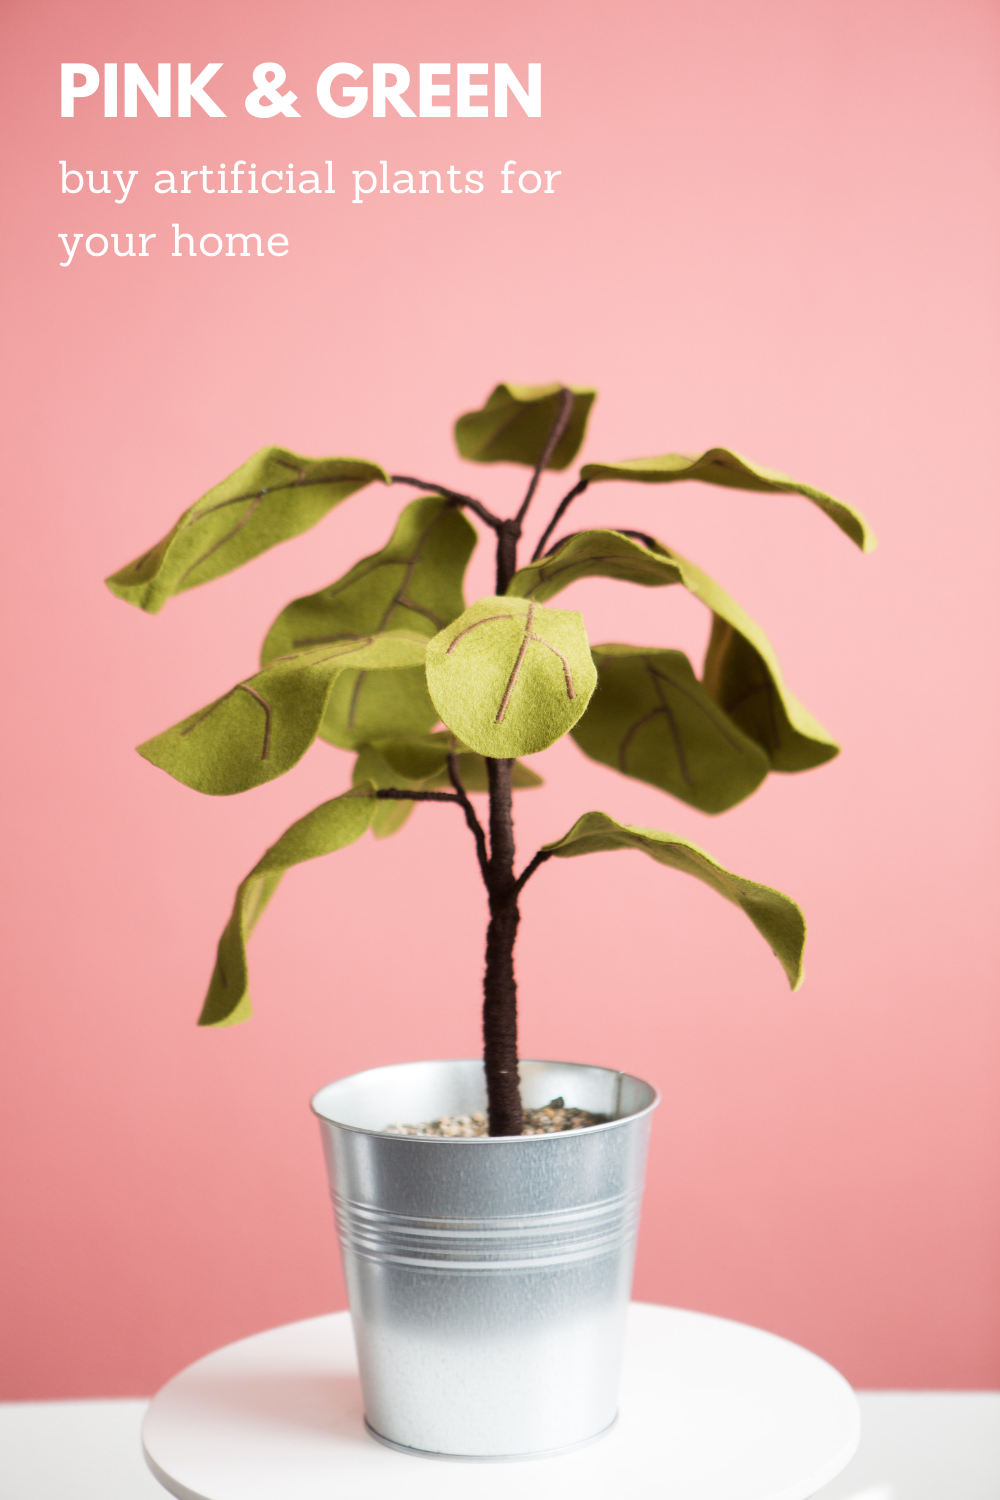 The best way to add a touch of style to your home is with an artificial house plant. A touch of Green and the outdoors with none of the hassle of a real plant. #artificialplants #homedecor #interiordesignideas #interiorstyling #interiorinspiration